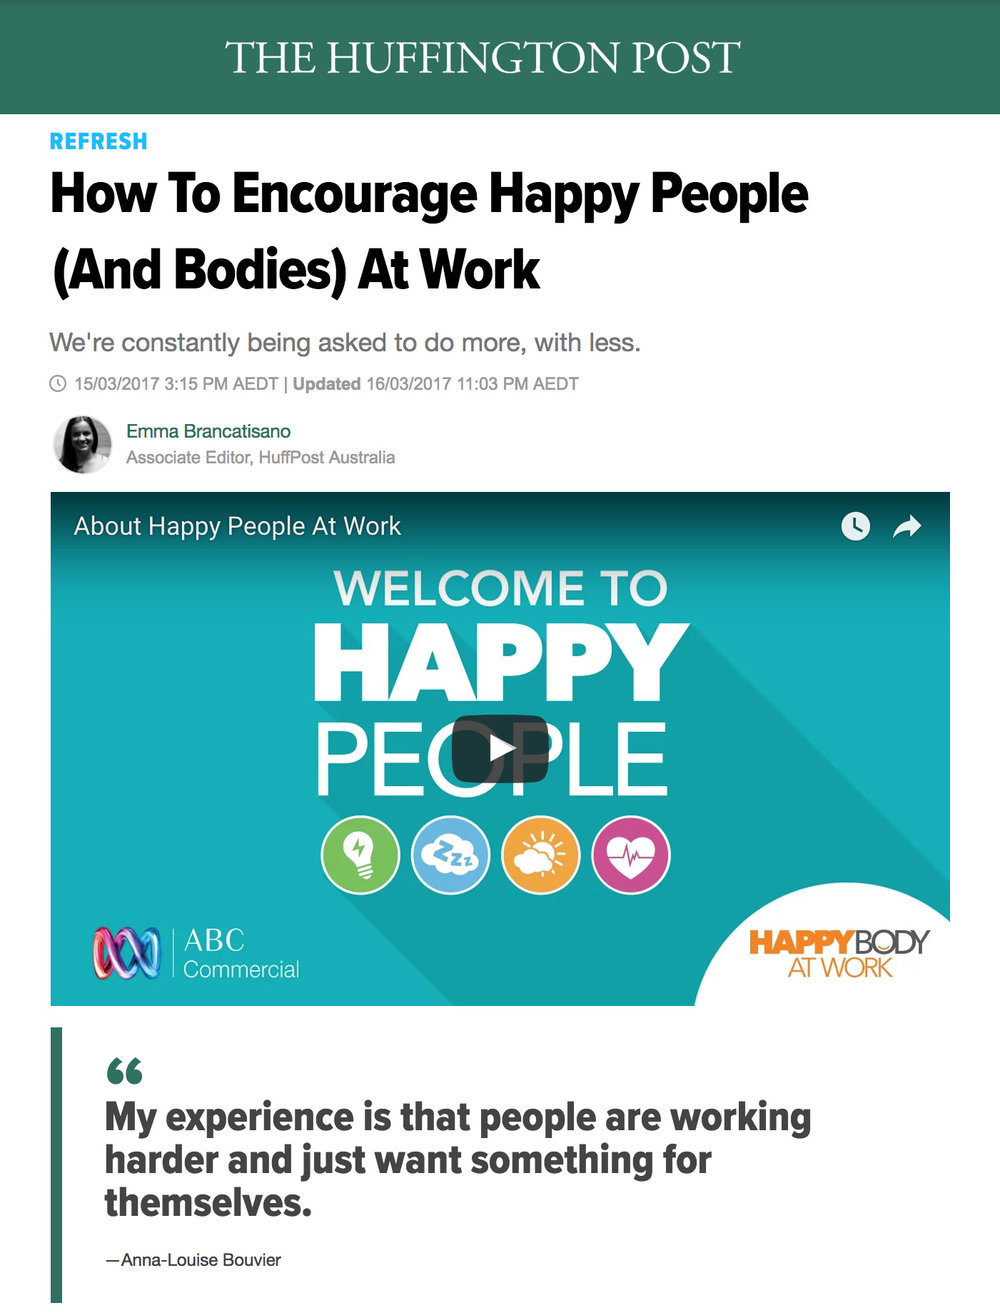 Huffinton-Post-How-to-encourage-Happy-People-At-Work.jpg